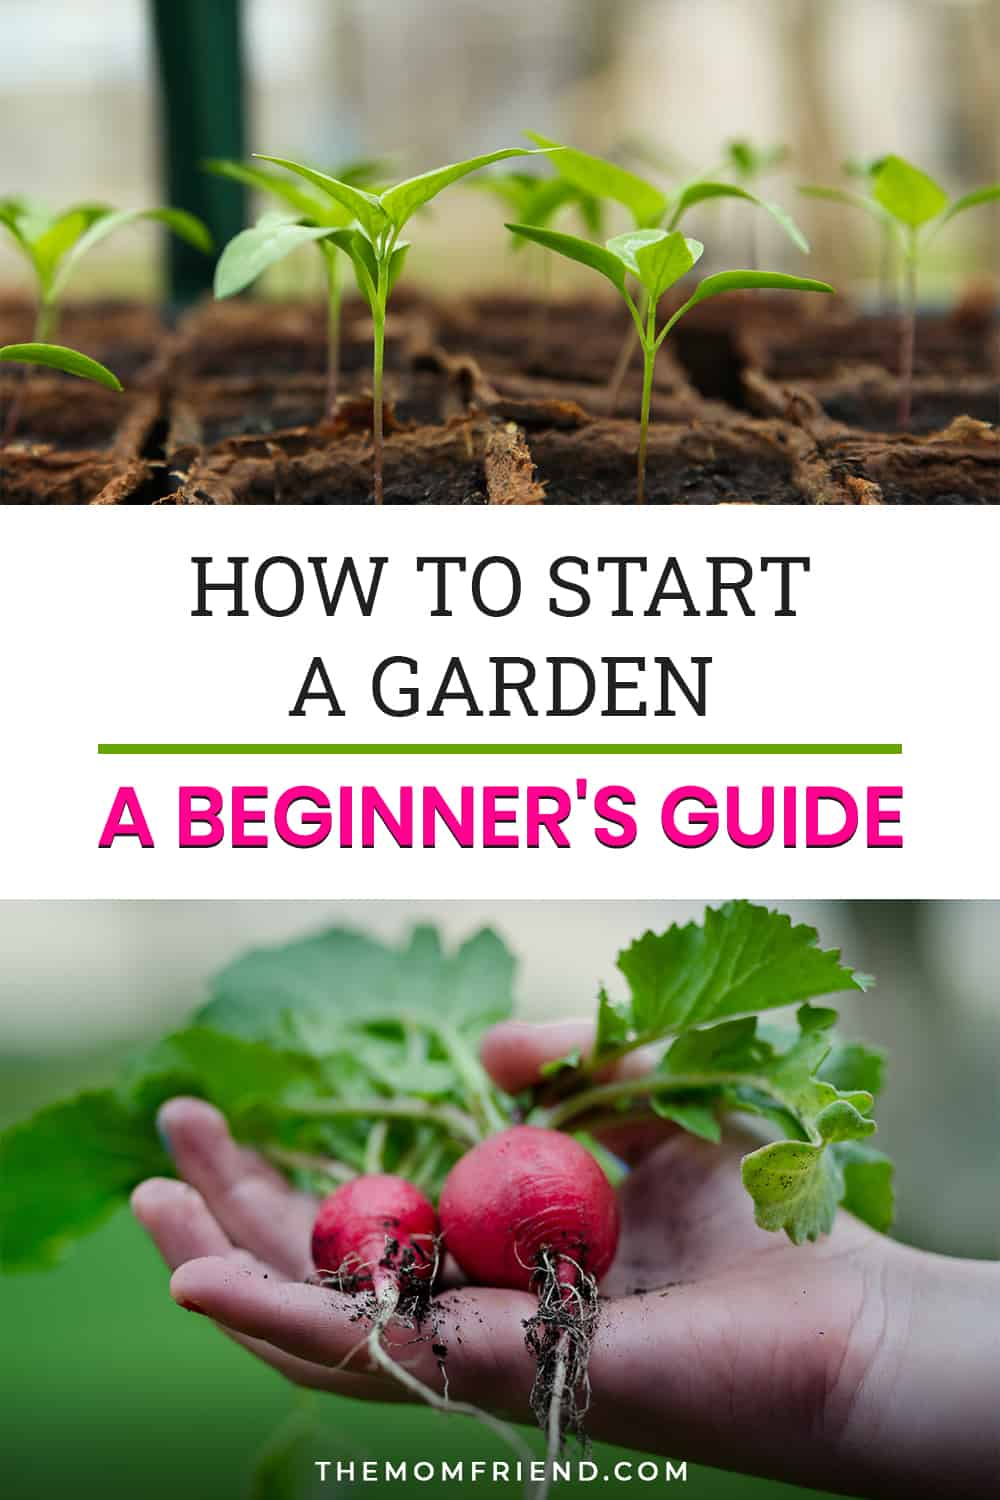 How to Start a Garden for Beginners